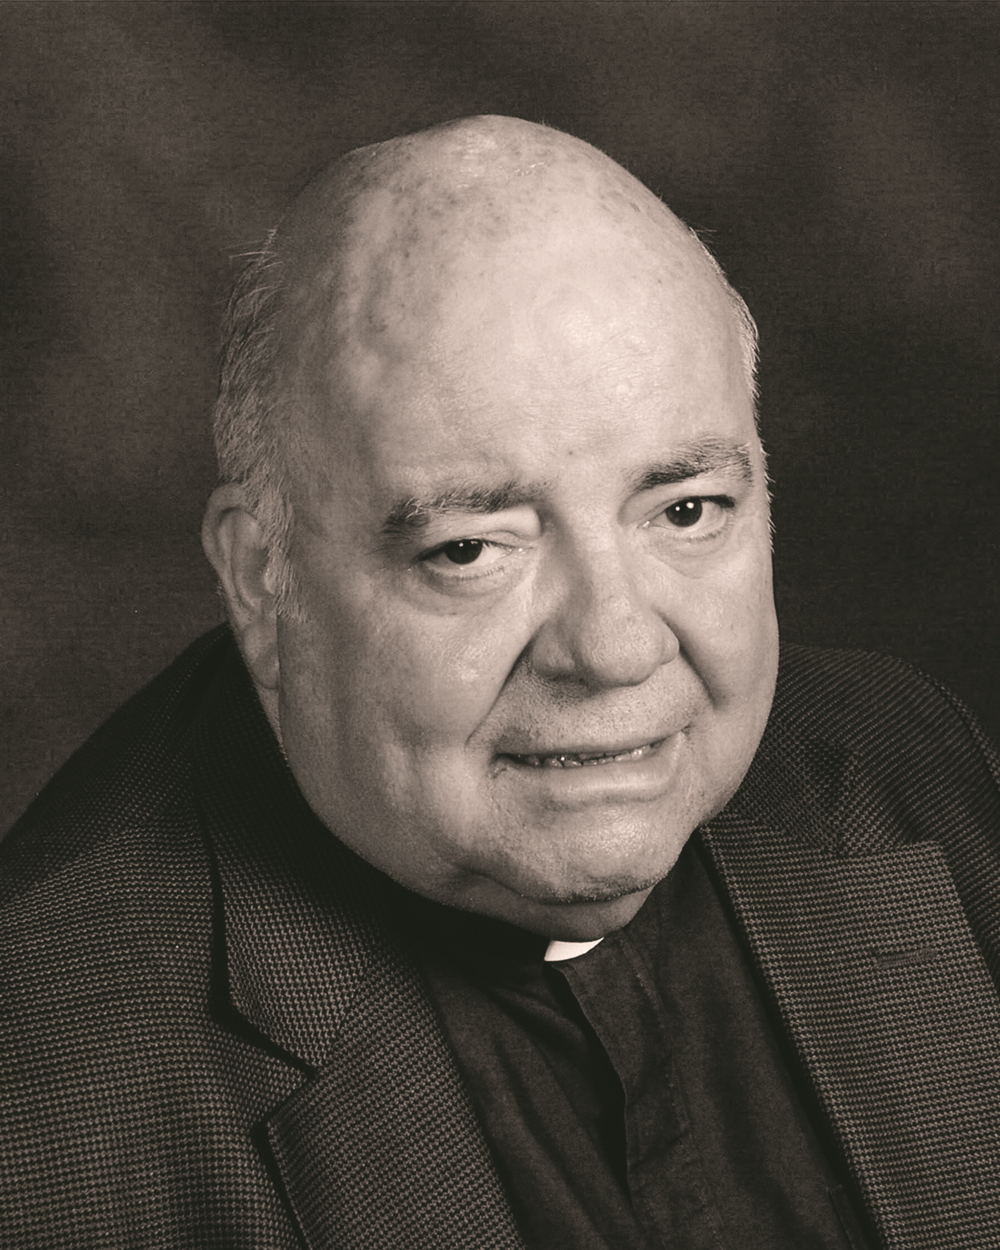 Reverend Frank Holtz April 7, 1940 – December 17, 2015